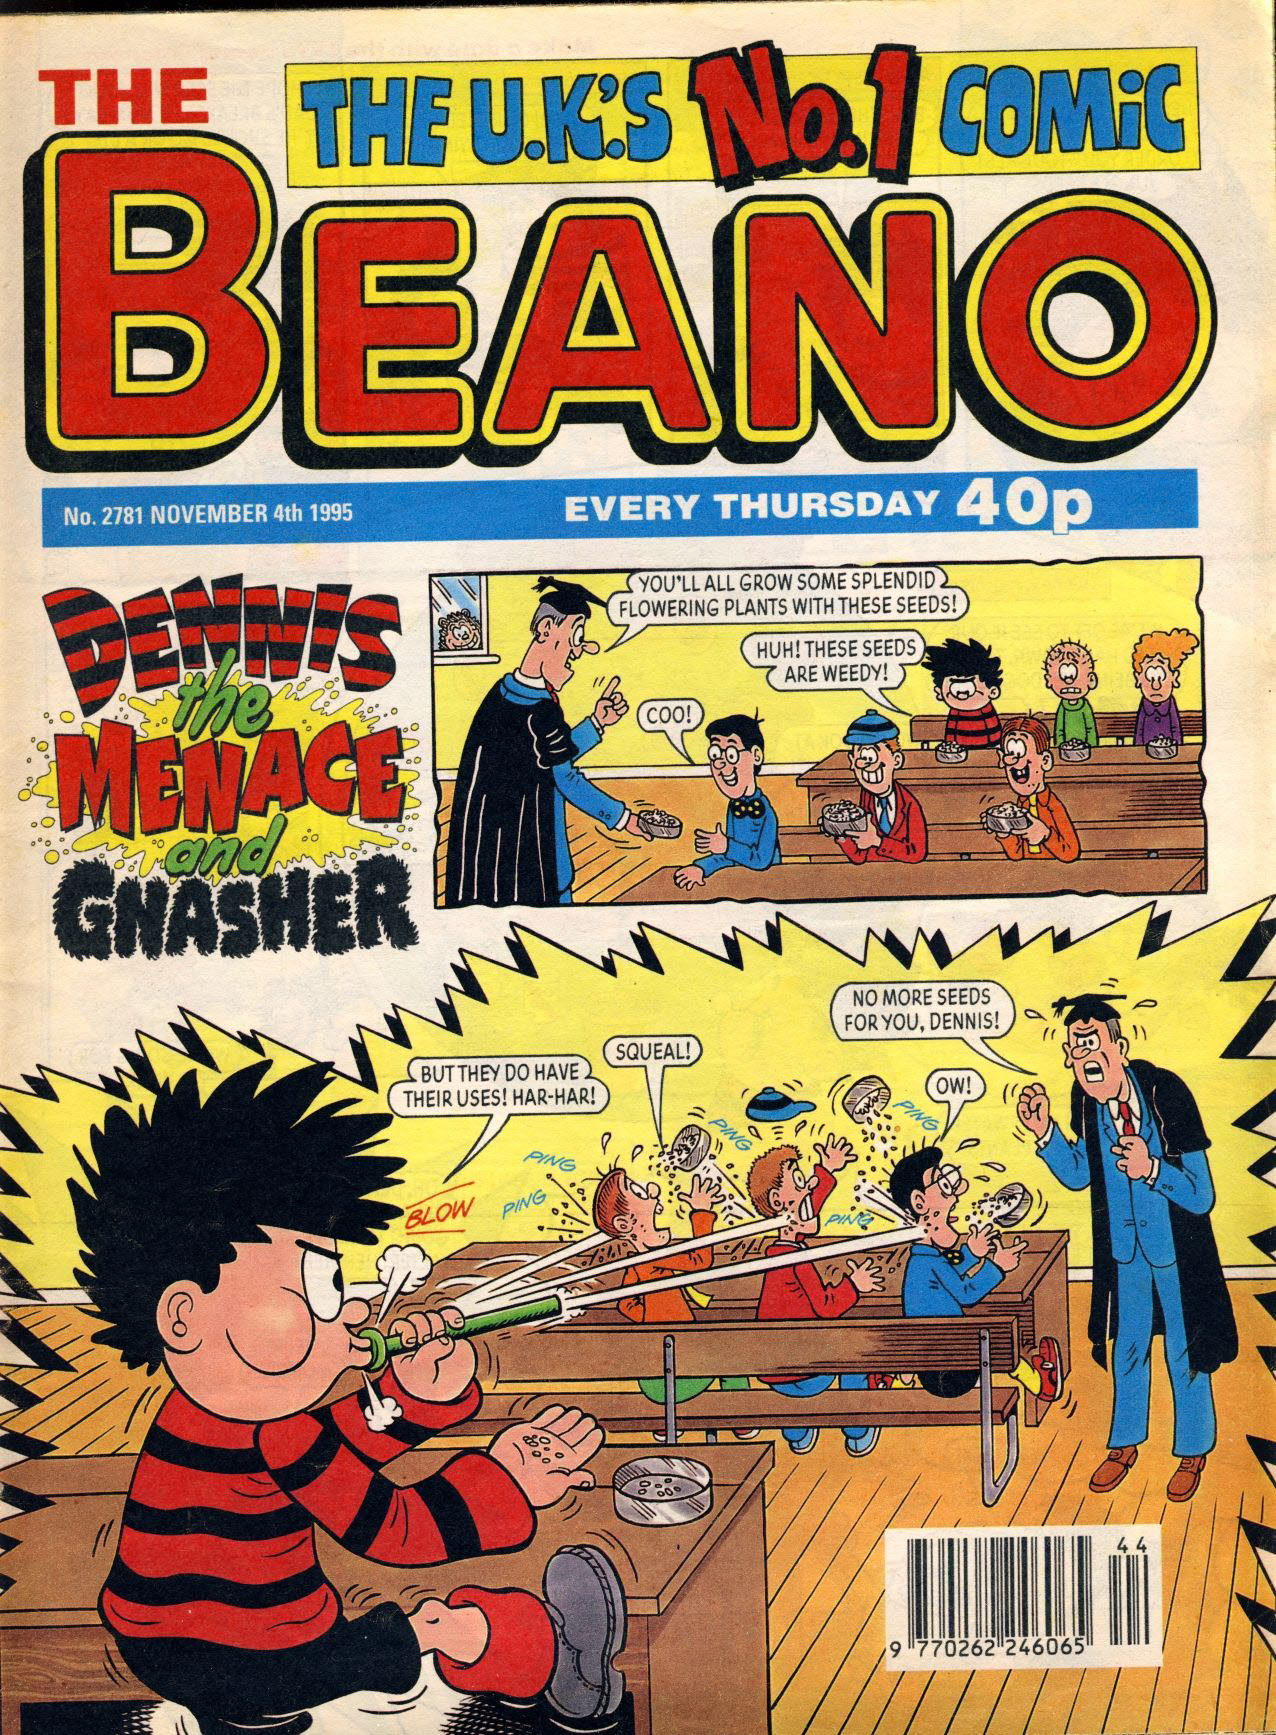 1995 November 4th BEANO vintage comic Good Gift Christmas Present Birthday Anniversary ref110 A vintage comic in good read condition. Please see larger photo and full description for details.